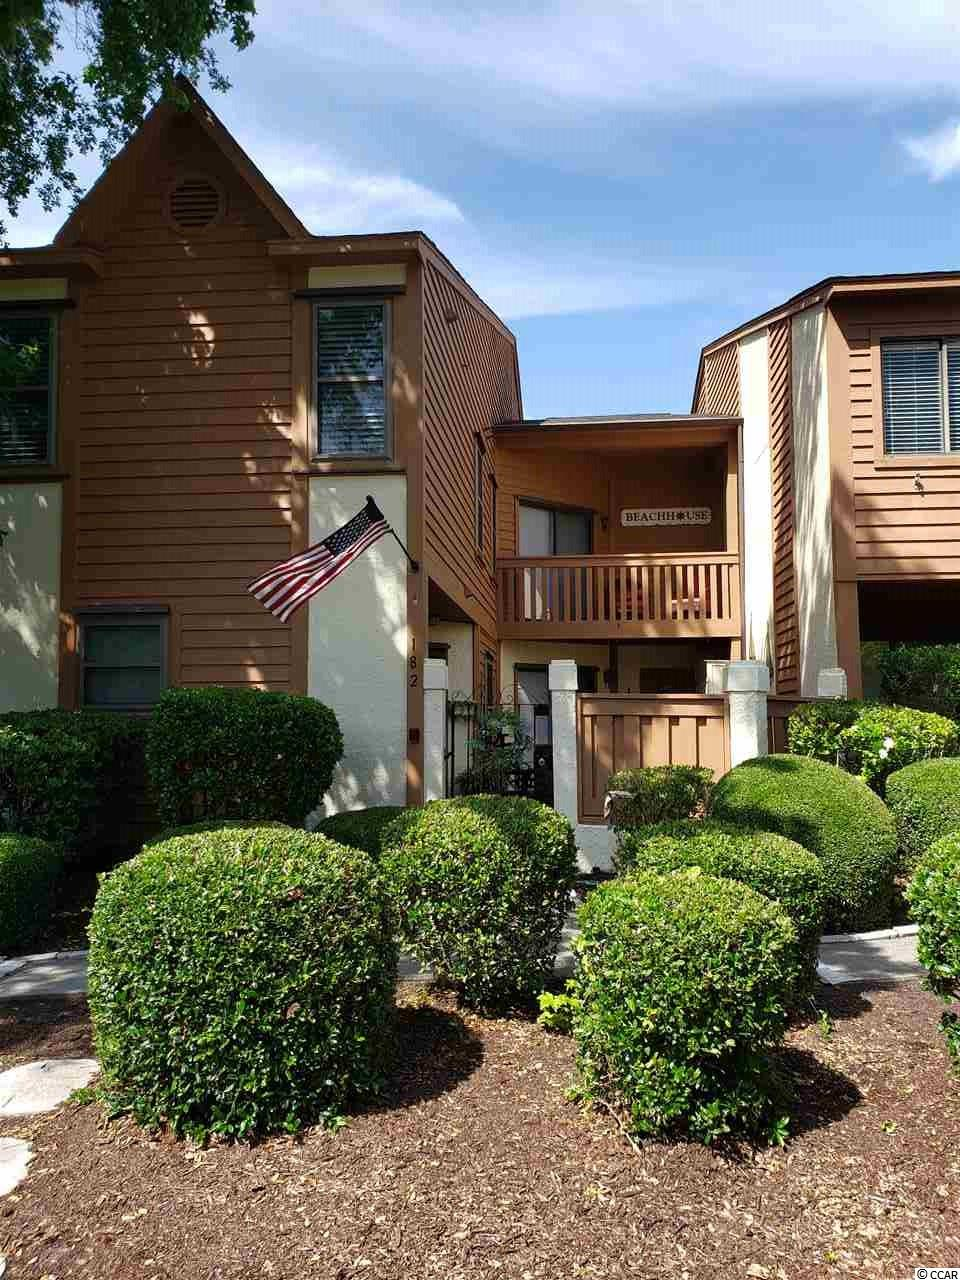 "Welcome to Surfside Beach!! The move in ready townhouse offers 2 bedrooms with 2.5 baths. East of business 17... ONLY 4 blocks from the Ocean! Each bedroom upstairs has its own full bath. Half bath is located on 1st floor. Master has walk-in closet, linen closet and attic with pull down stairs. Master bedroom has private Balcony overlooking courtyard. Sellers have remodeled which includes- Painted kitchen cabinets, kitchen sink, granite counter tops, under cabinet lighting, back splash and garbage disposal, 3 new toilets, bath faucets and new lighting throughout. Painted 1st floor ceilings, all condo walls and trim throughout, Bruce 5"" plank laminate flooring, carpeting upstairs. This condo is offered as unfurnished. Please shut all lights and return key to lock box. This unit is a second home for sellers. Hurricane shutter system (stored in storage room outside), new windows and building was last painted in 2019! Washer and Dryer are staying with townhouse. Pets and Golf cart friendly!! Call today for your showing!"